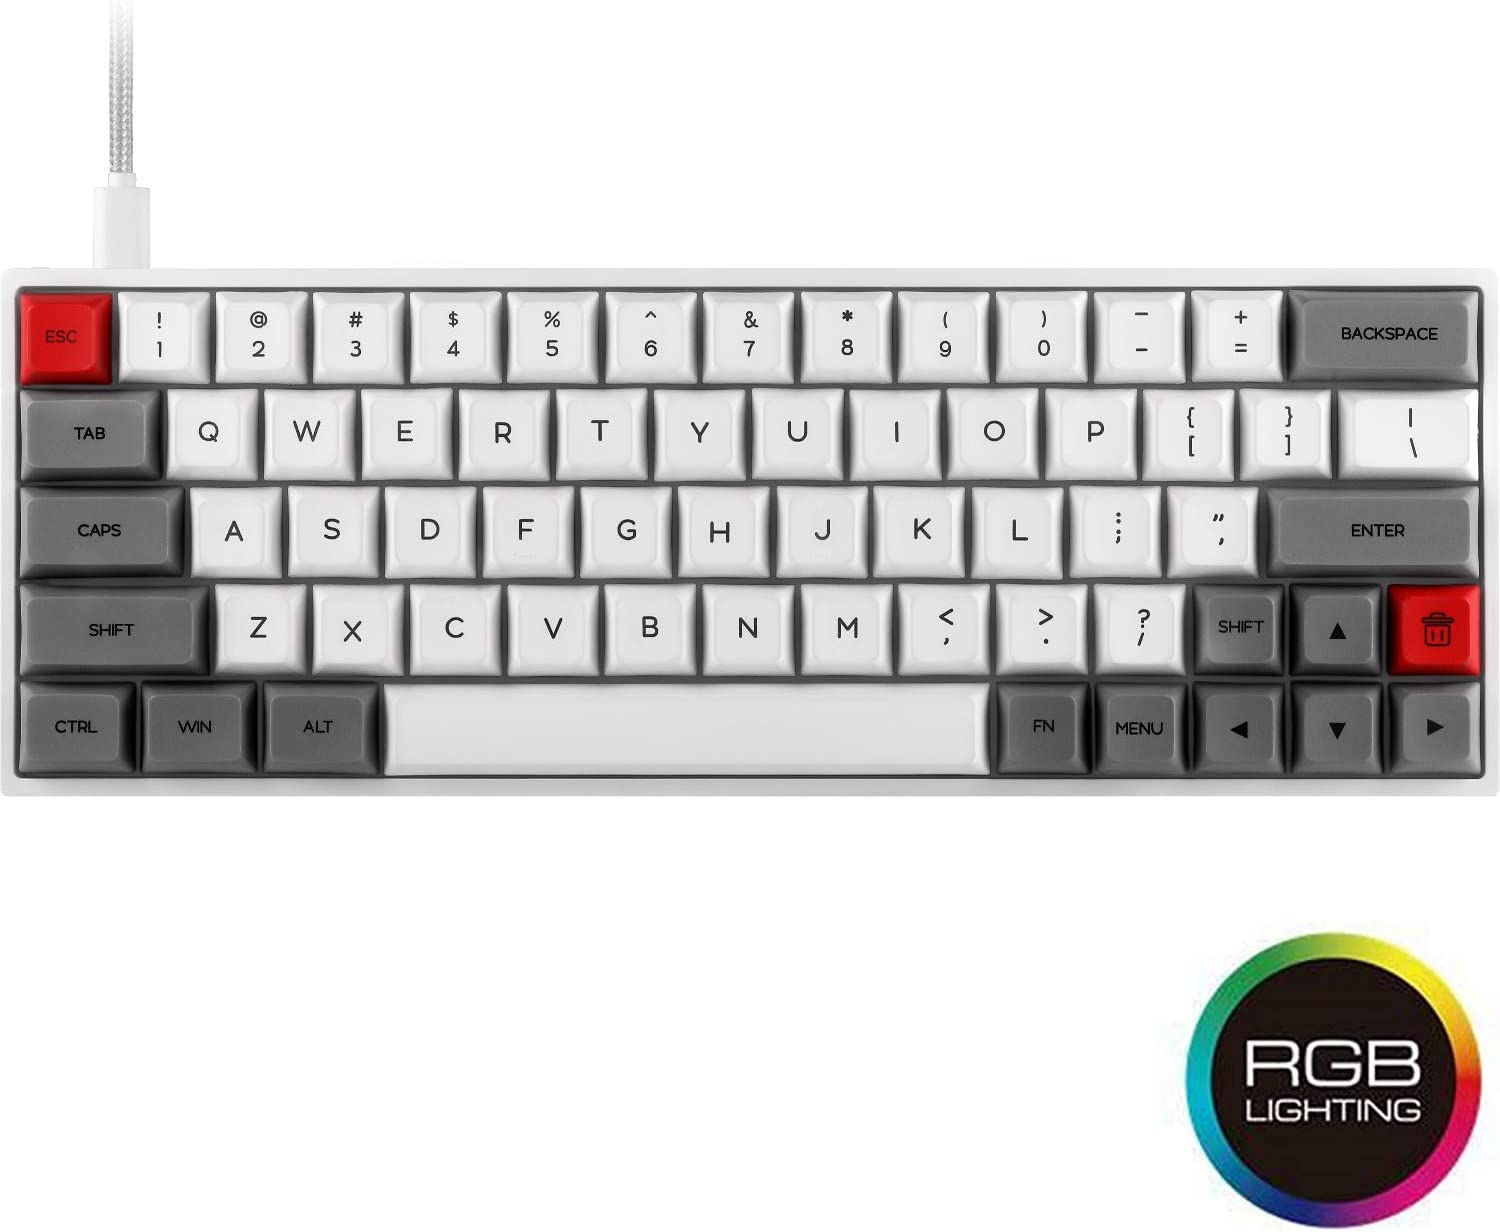 SK64 Grey Wired 60% Keys NKRO Gateron Optical Axis - 64 Keys Multi Color RGB Backlit Mechanical Gaming Keyboard with PBT Heat Sublimation Keycaps Waterproof Programmable (Gateron Brown Switch)